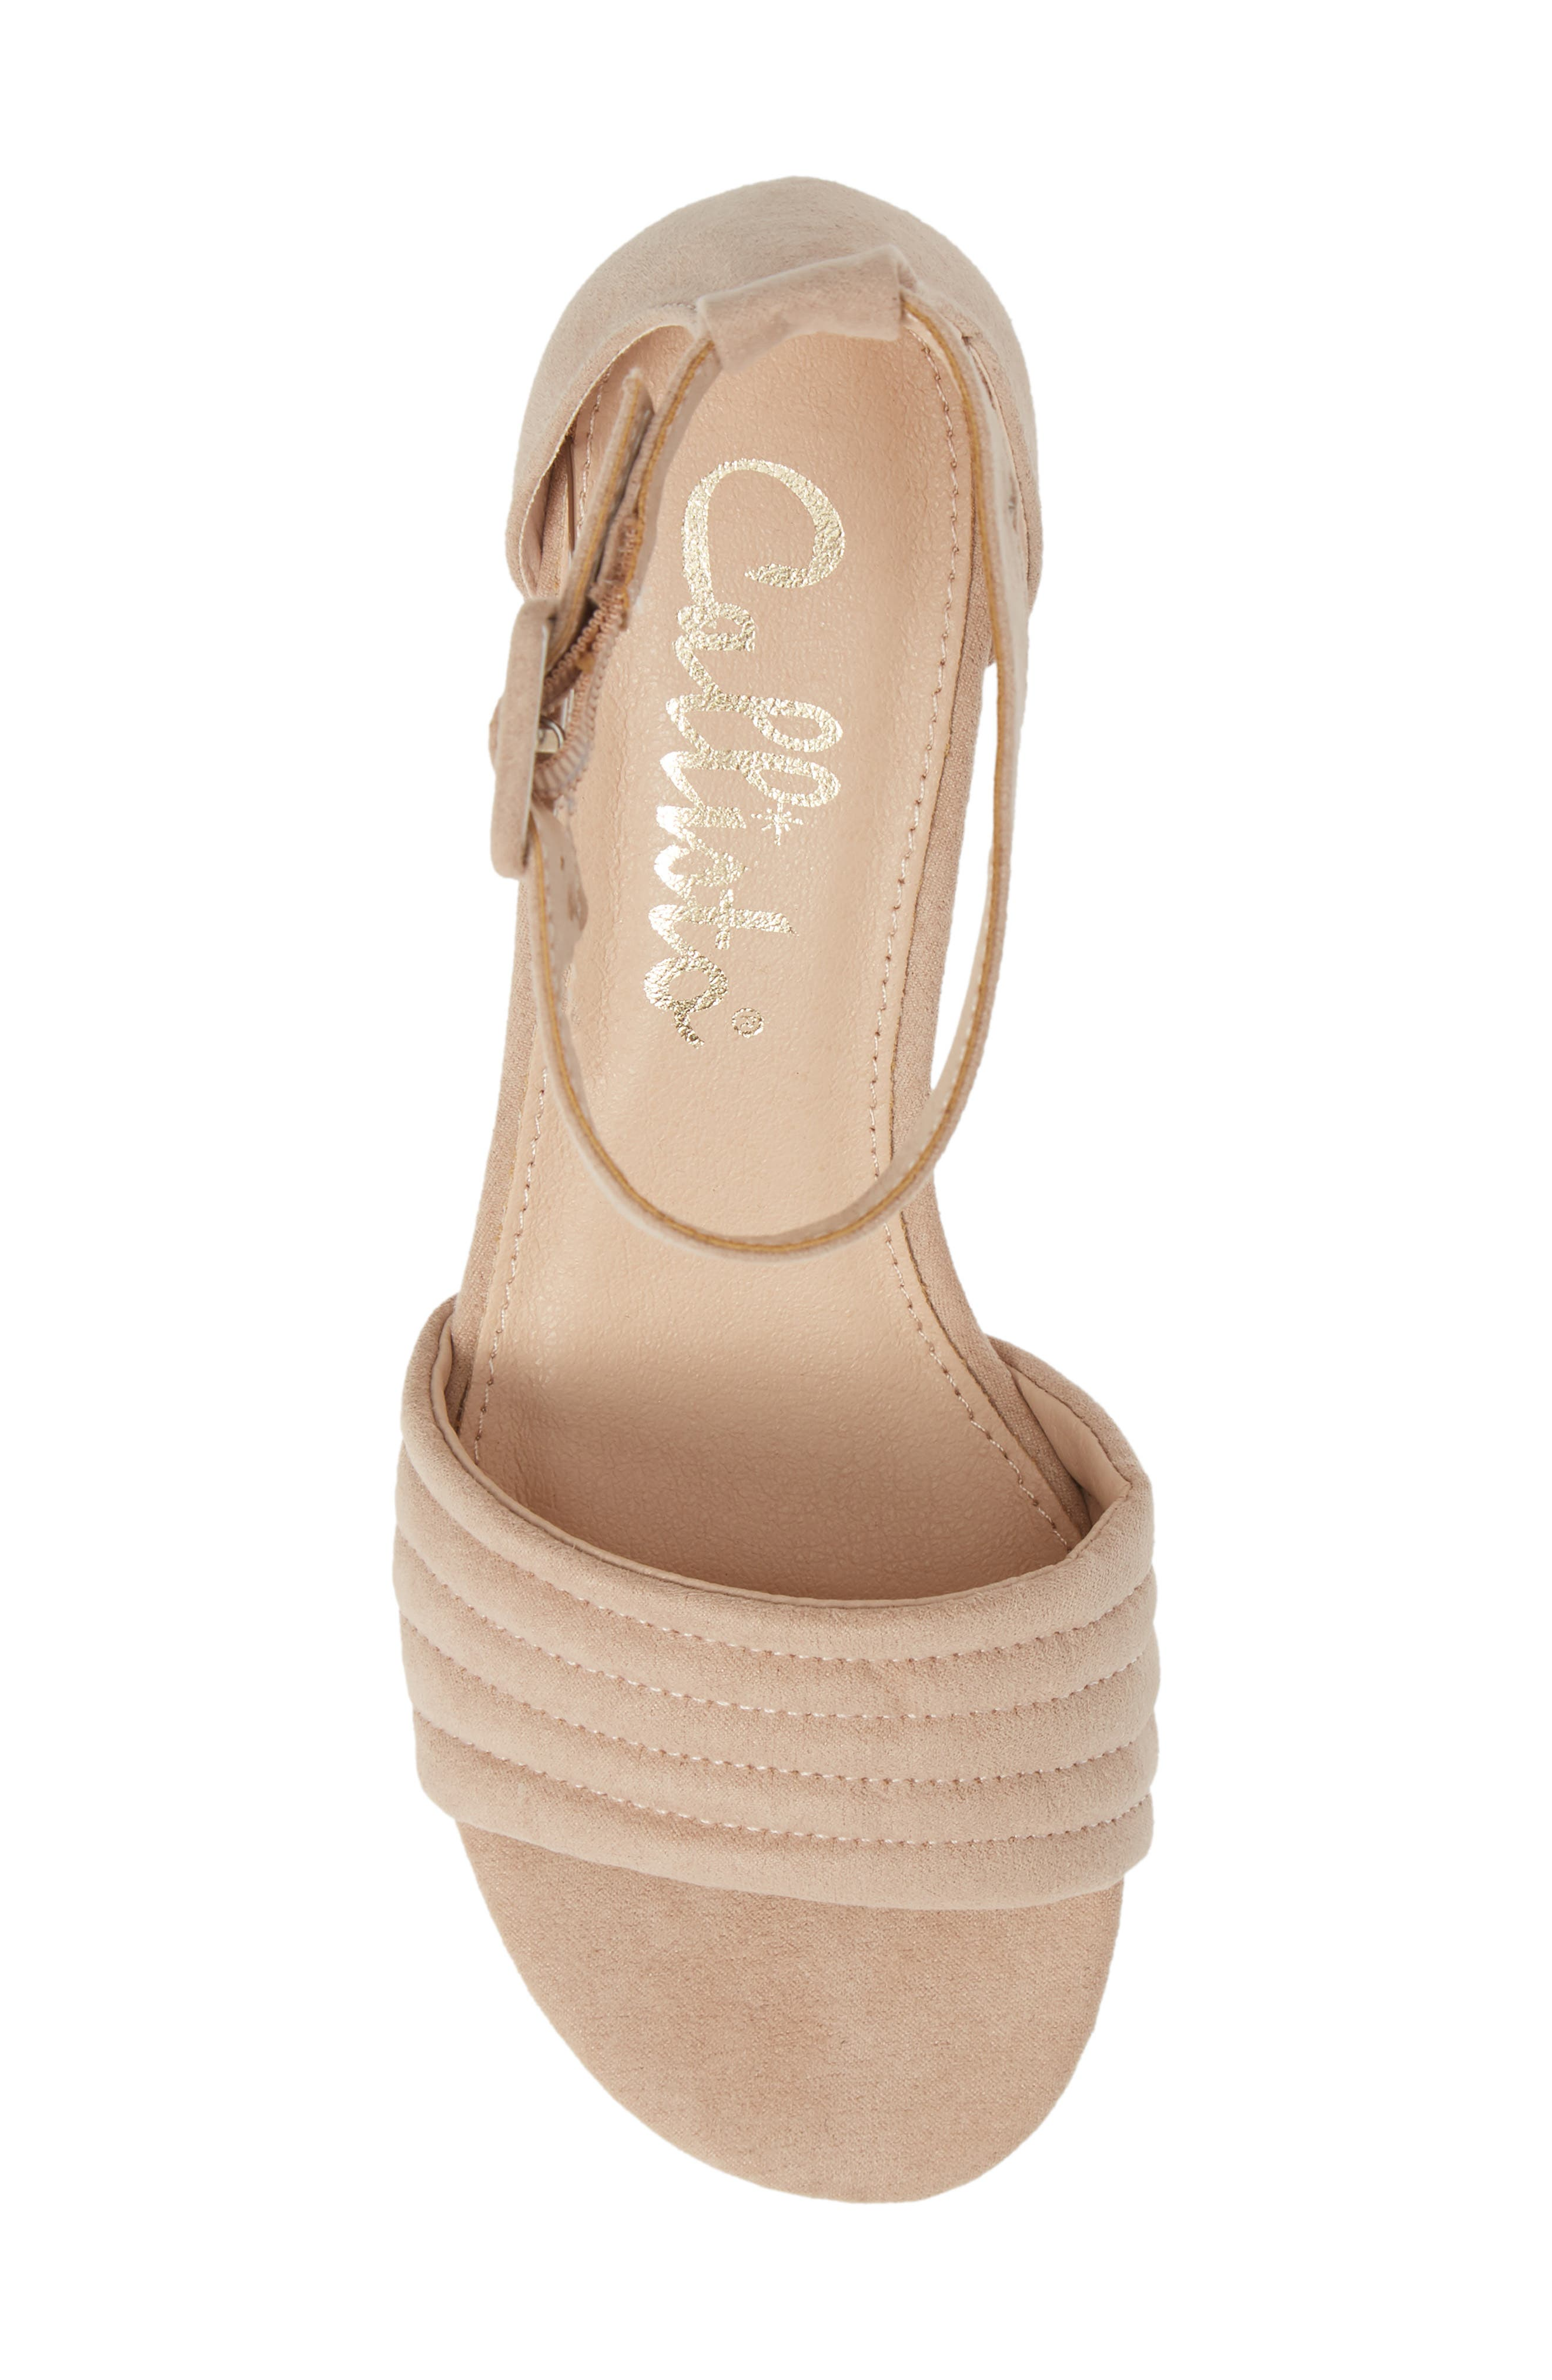 CALLISTO, Puffye Ankle Strap Sandal, Alternate thumbnail 5, color, BLUSH SUEDE SYNTHETIC